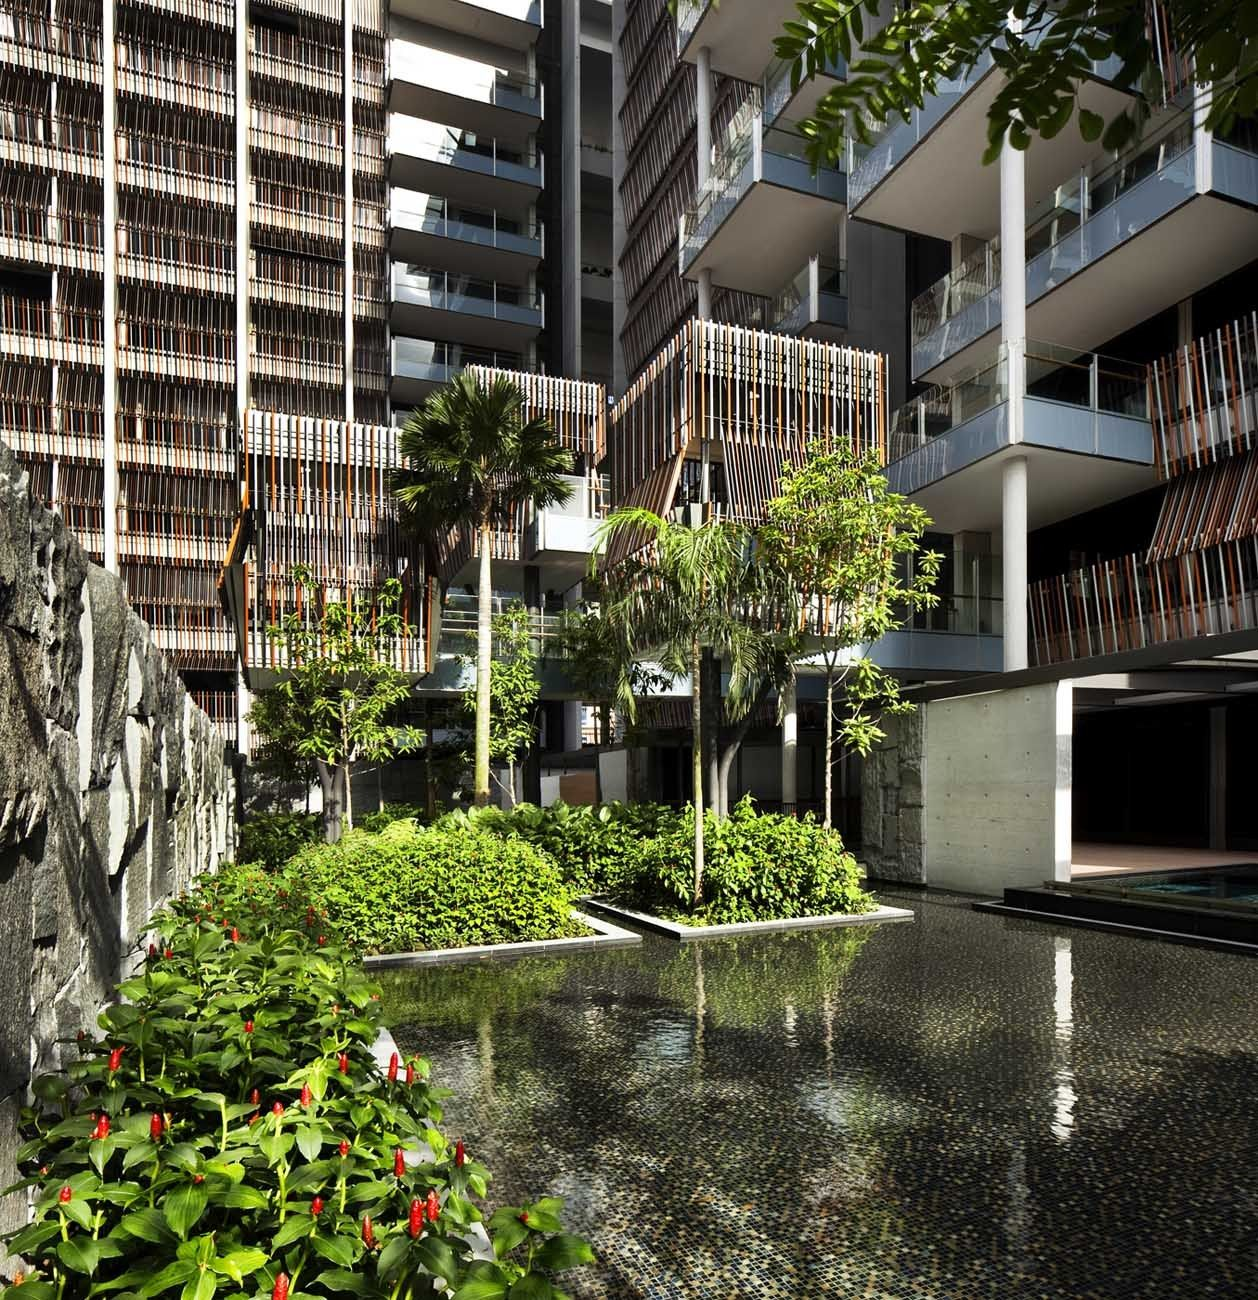 Apartments In Singapore: The Goodwood Residence By WOHA Architects In Singapore